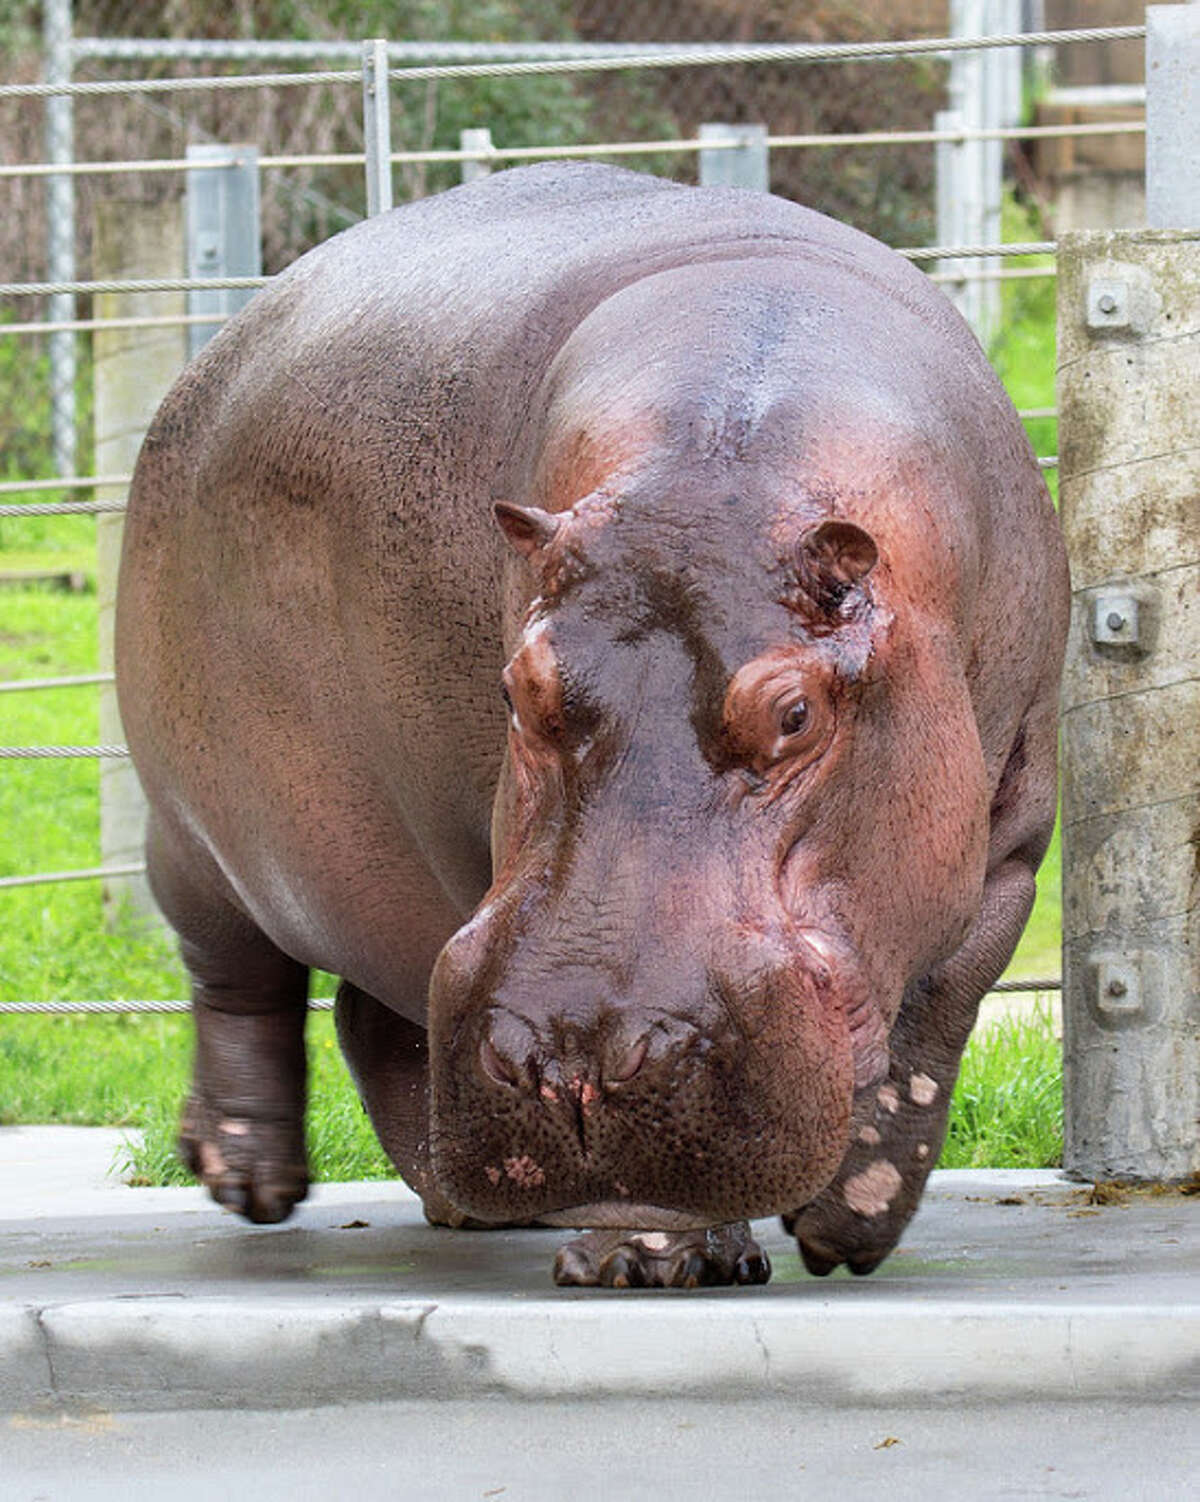 The Nile hippopotamus is named for coach Bruce Bochy.